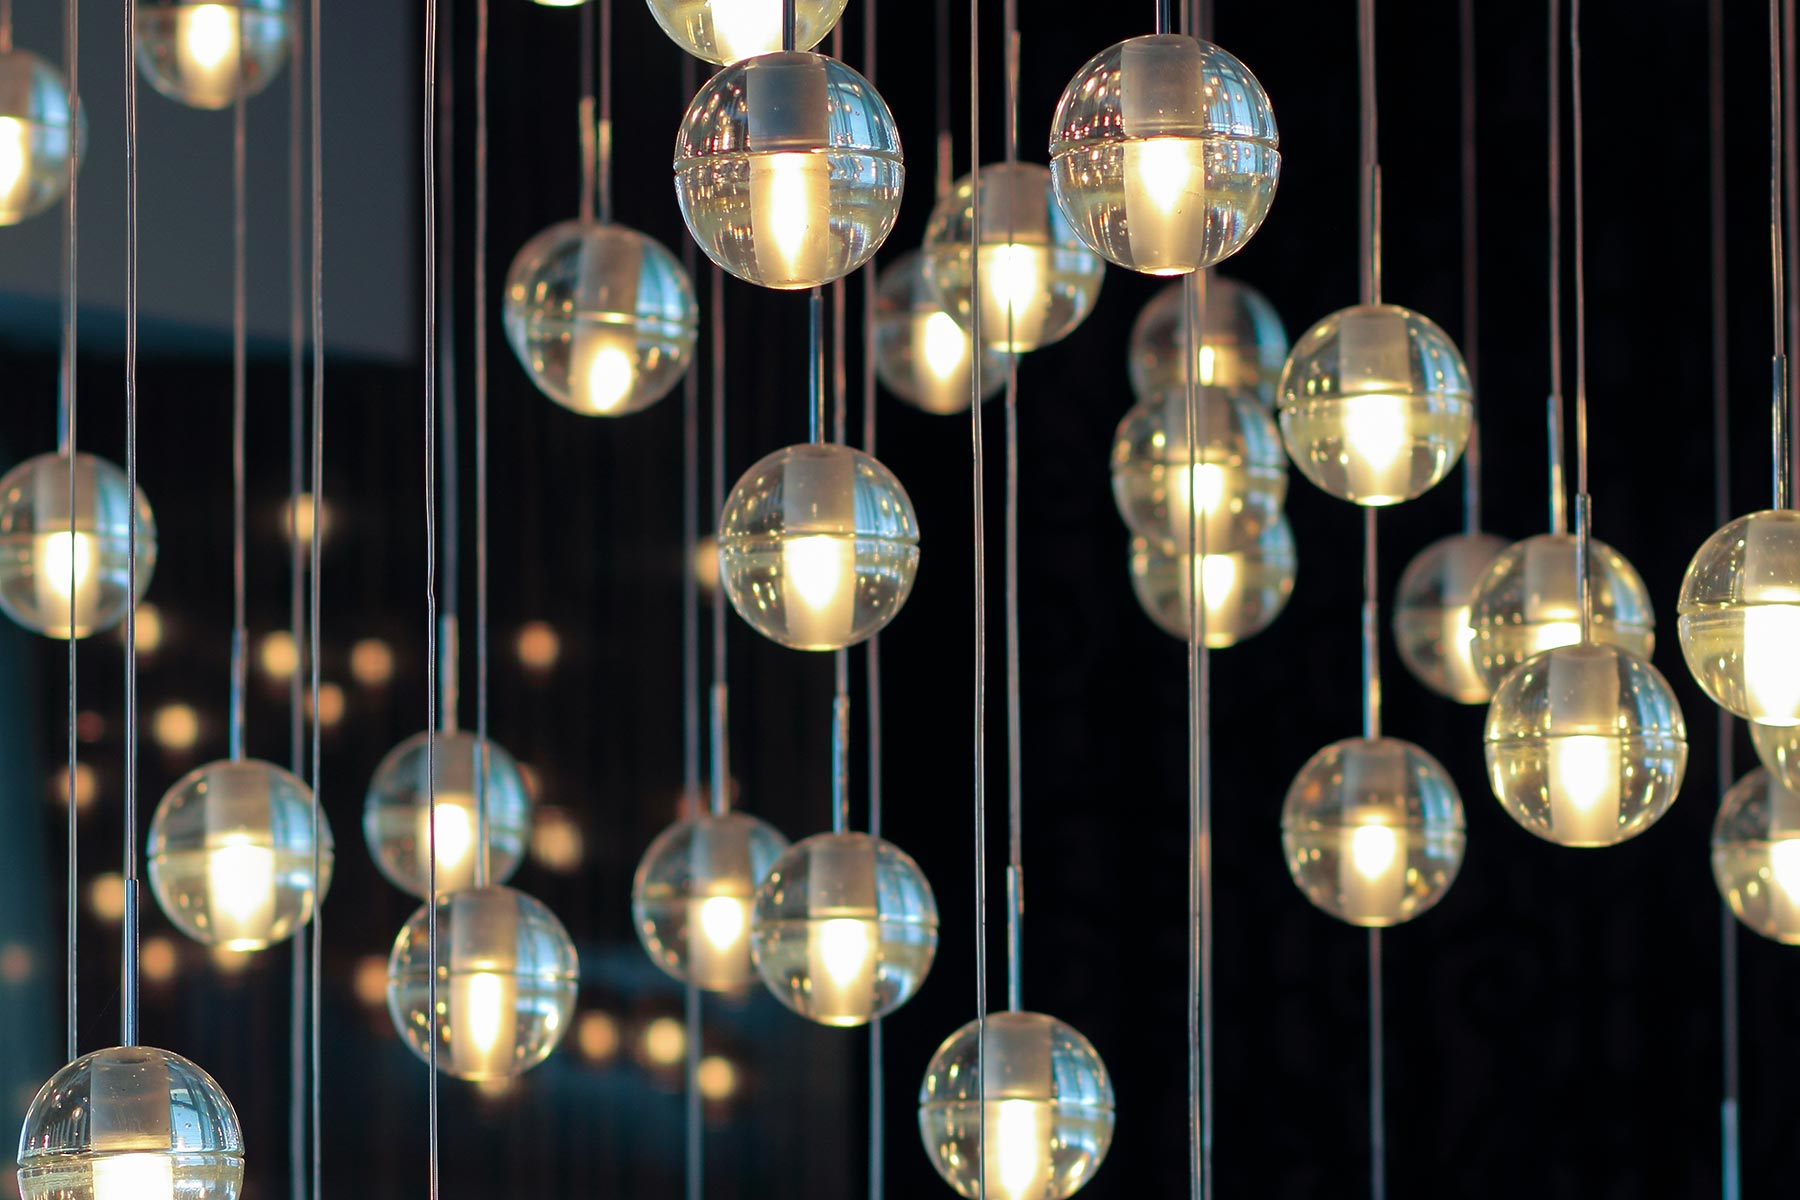 bespoke lighting fixture hangs from the ceiling